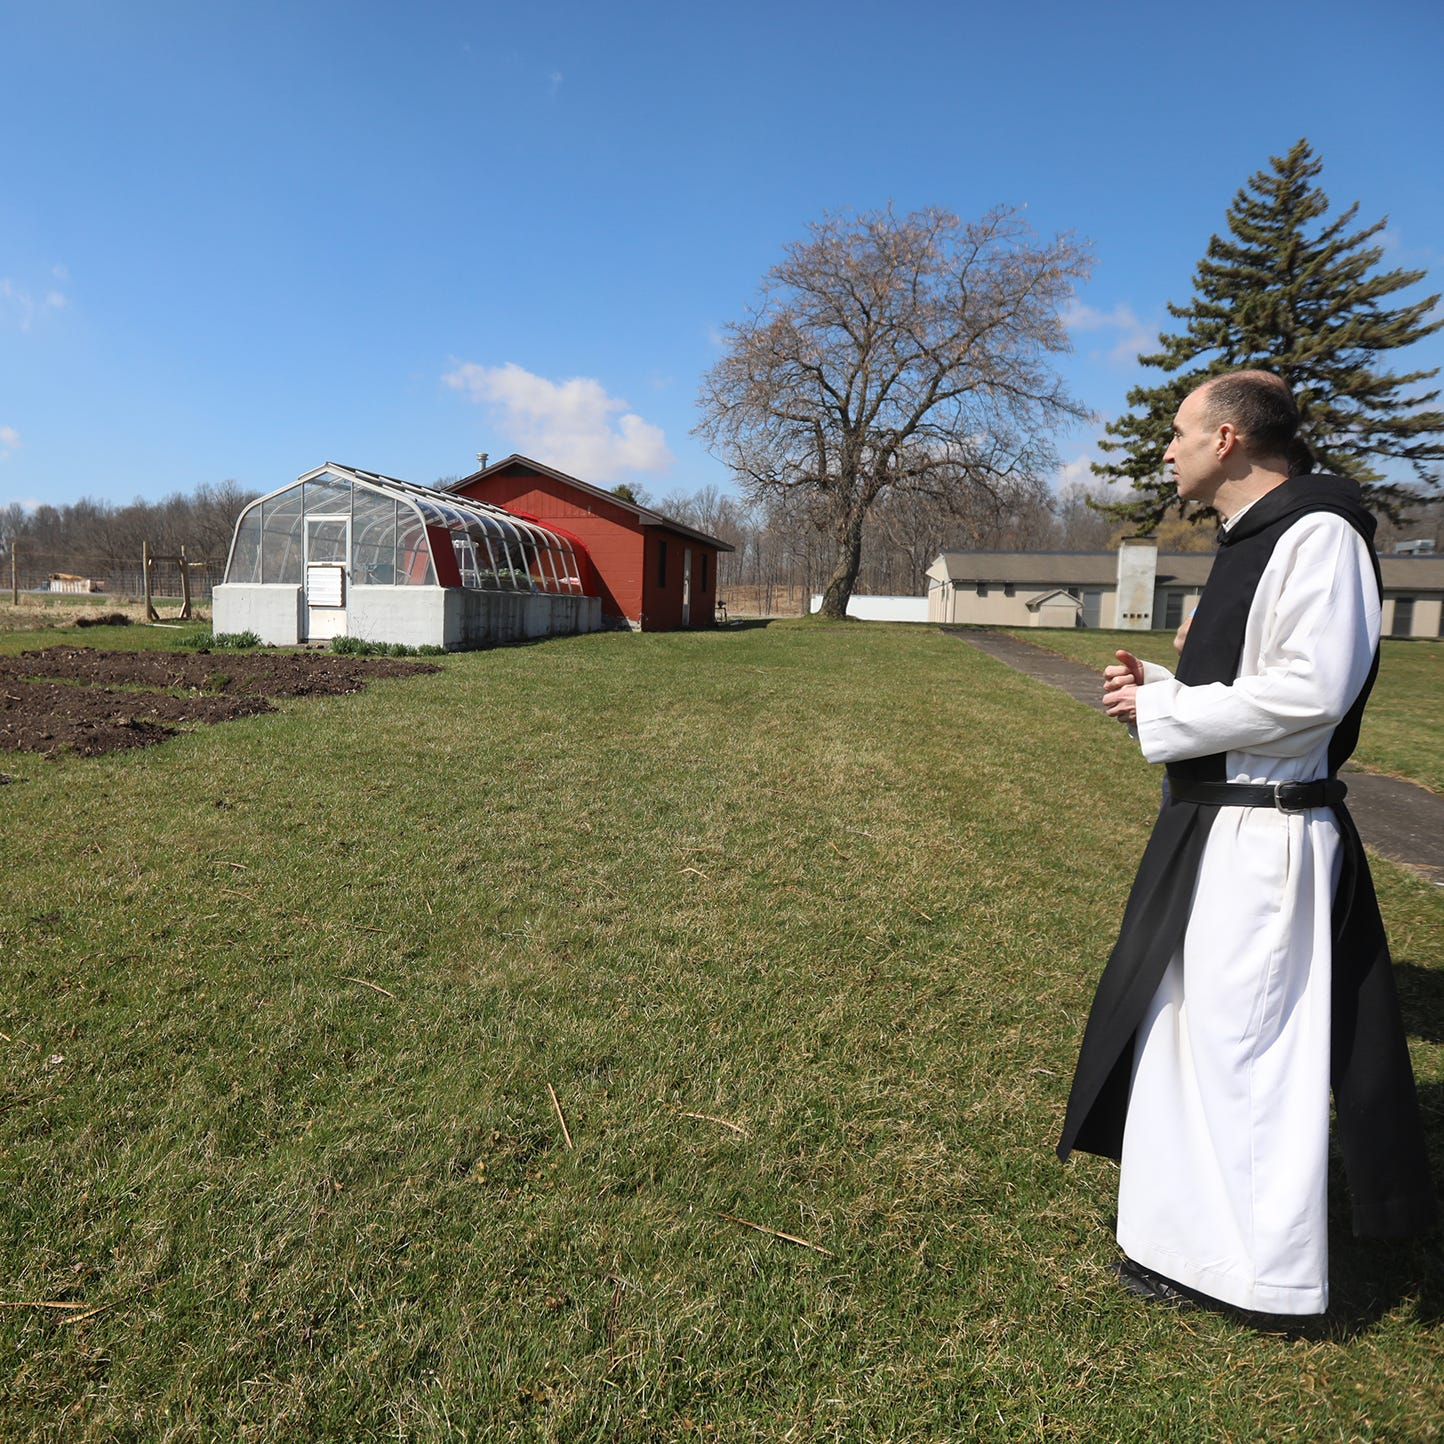 Abbey known for Monks' Bread welcomes visitors with new store, 'great peace and silence'